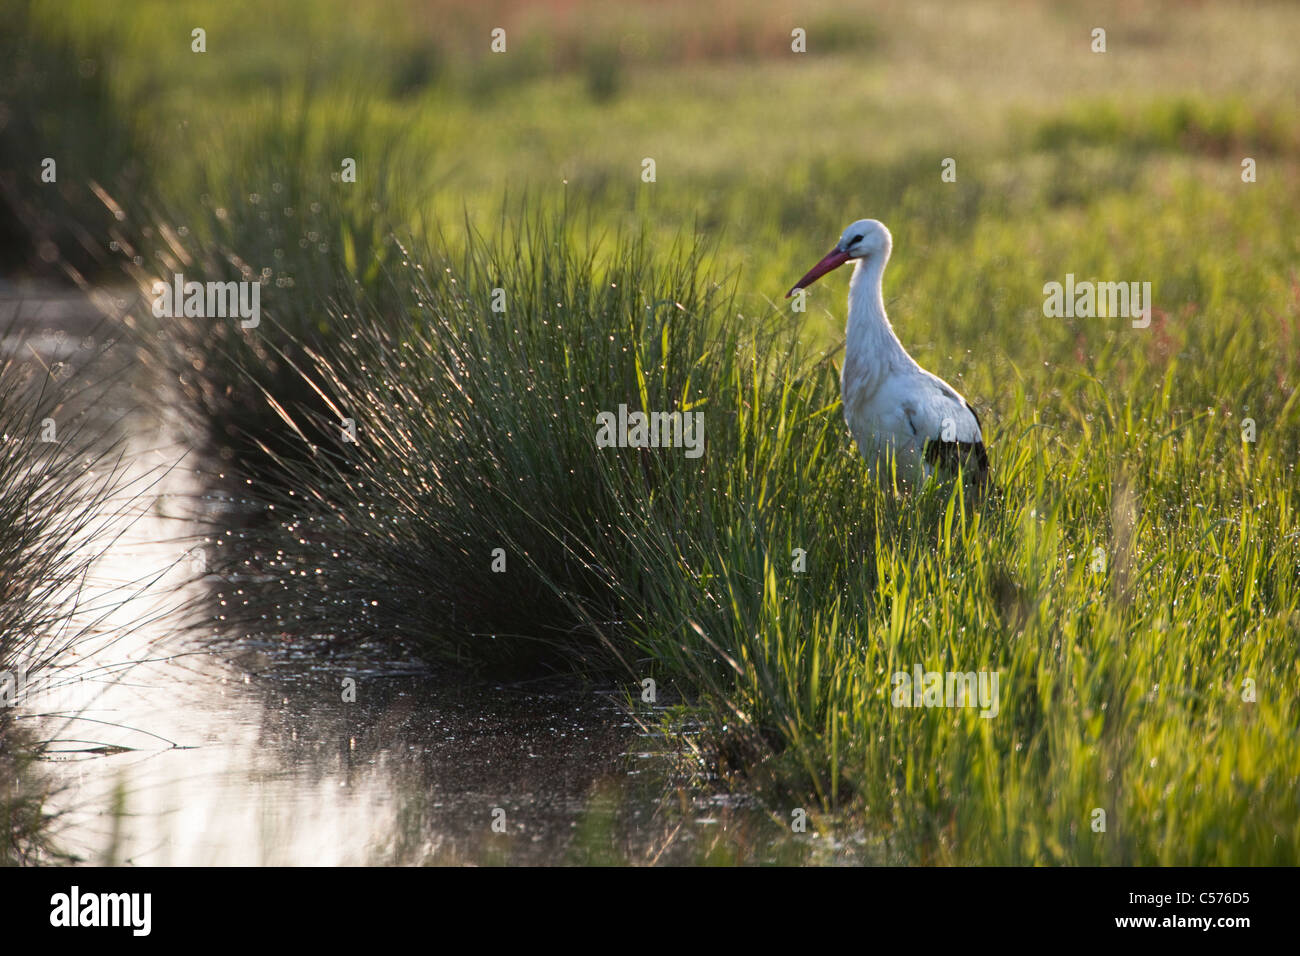 The Netherlands, Jonen, Stork at creek. - Stock Image